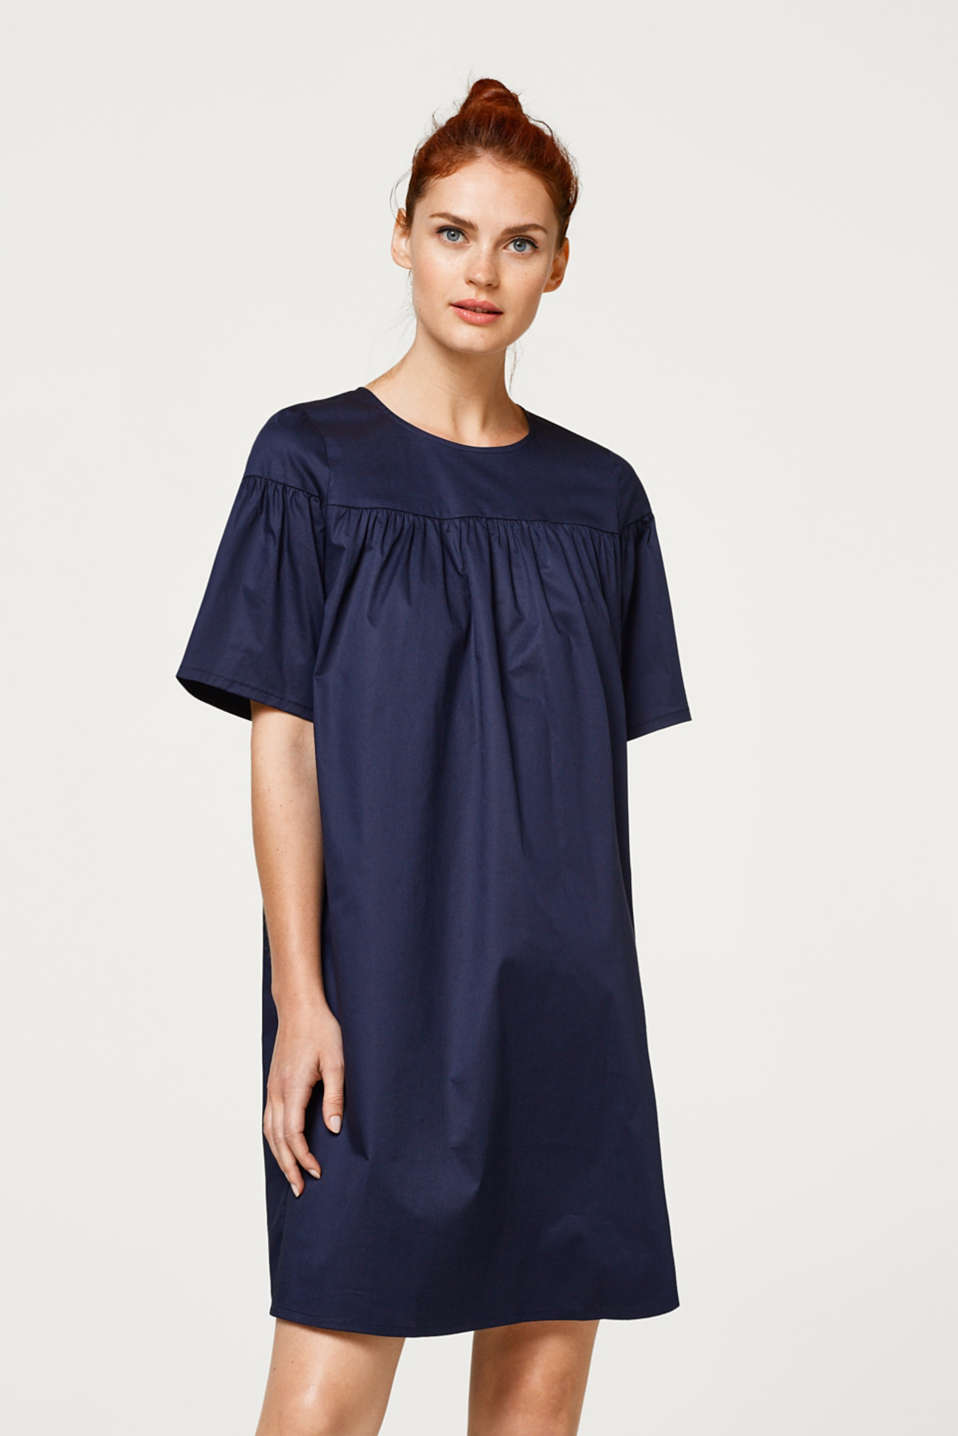 Esprit - Dress in a wide A-line design, made of stretch cotton